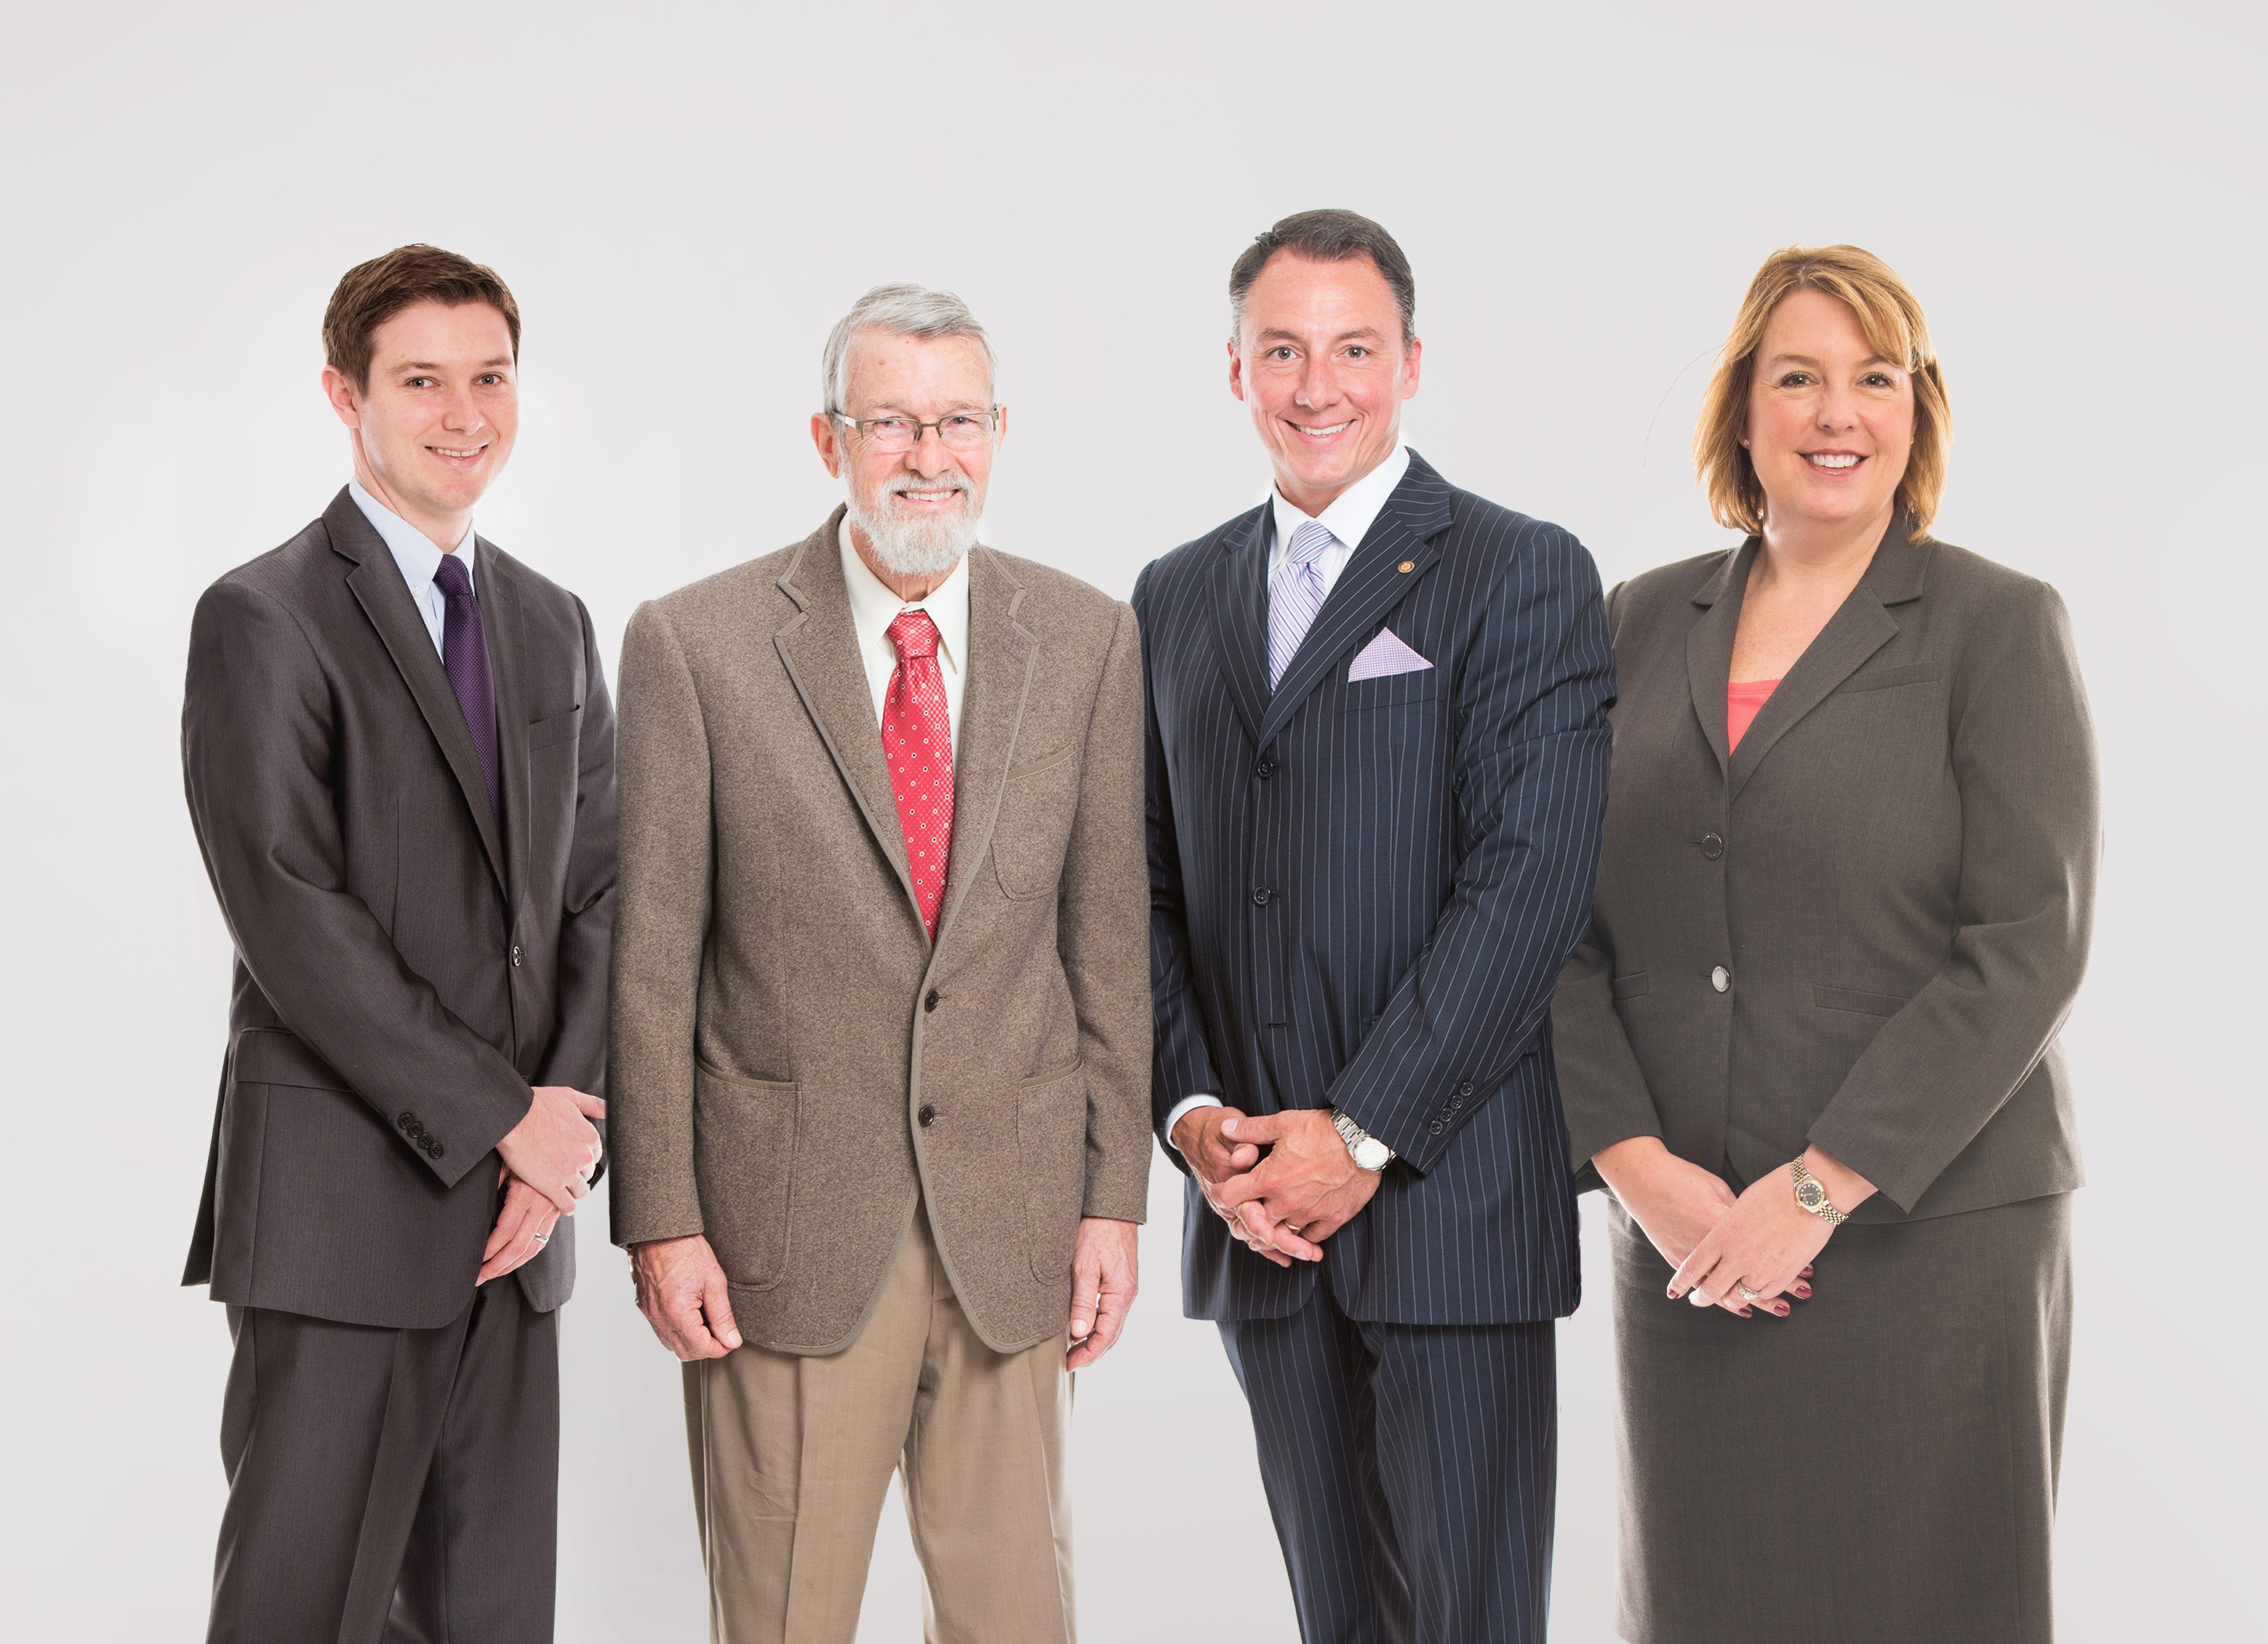 Fletcher & Phillips Attorneys Jacksonville Fl  Family. Tuscaloosa Toyota Used Inventory. Memphis Bankruptcy Attorney Irs Fresh Start. Garage Door Repair Layton Vehicle Buying Tips. Lojack Theft Protection Dentist In Norwalk Ct. How Do Voip Phones Work Heroin Addiction Rehab. Top Accredited Online Universities. Dell Xps 12 Ultrabook Review Cnet. Personal Injury Lawyers Denver